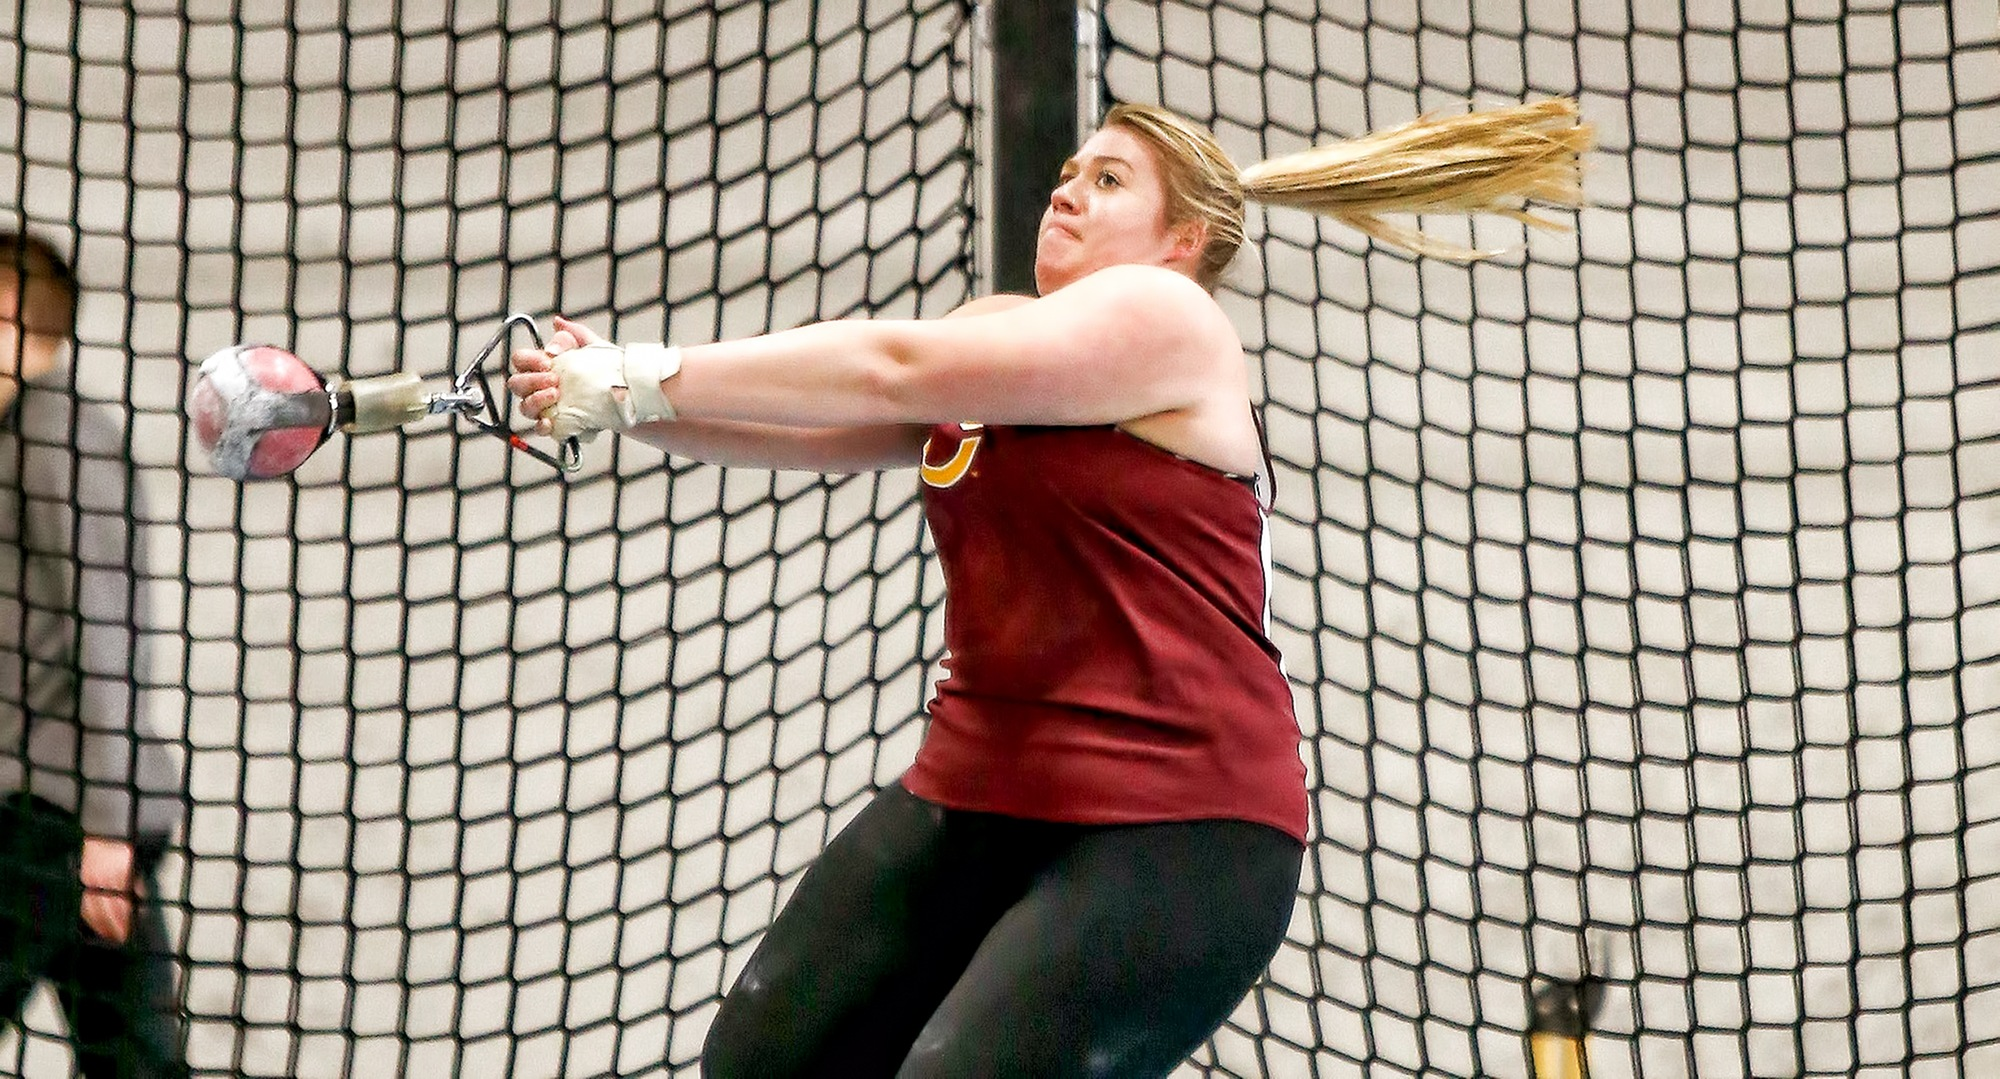 Kelsey Rajewsky posted her second straight 5th-place finish in the weight throw at the MIAC Indoor Meet. She was one of three CC athletes who went 3-4-5 in the event. (Photo courtesy of Nathan Lodermeier)